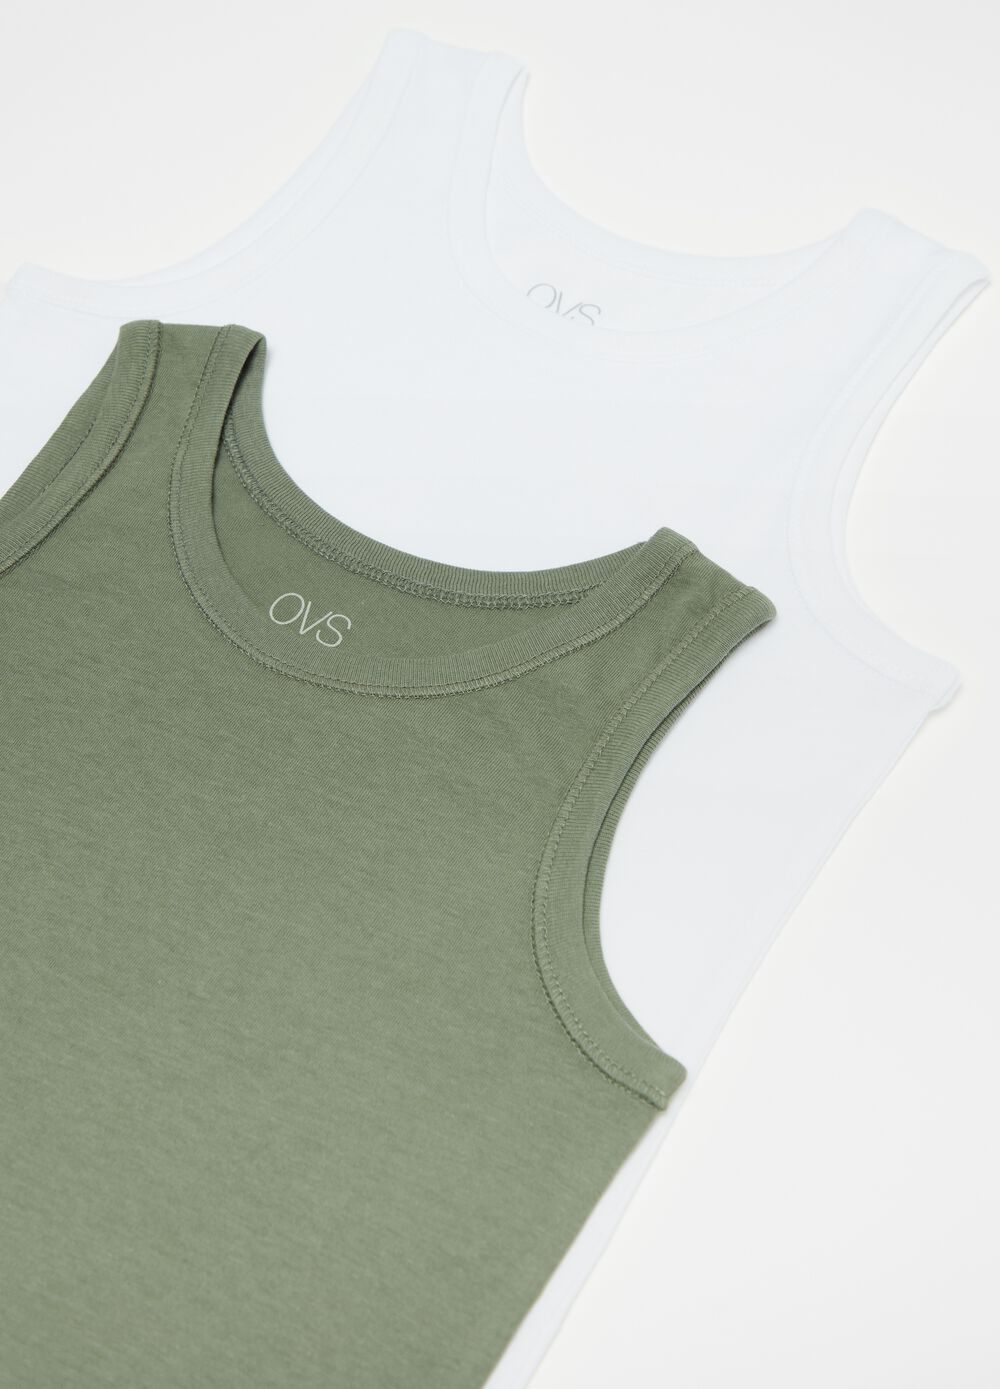 Two-pack 100% organic cotton under vests